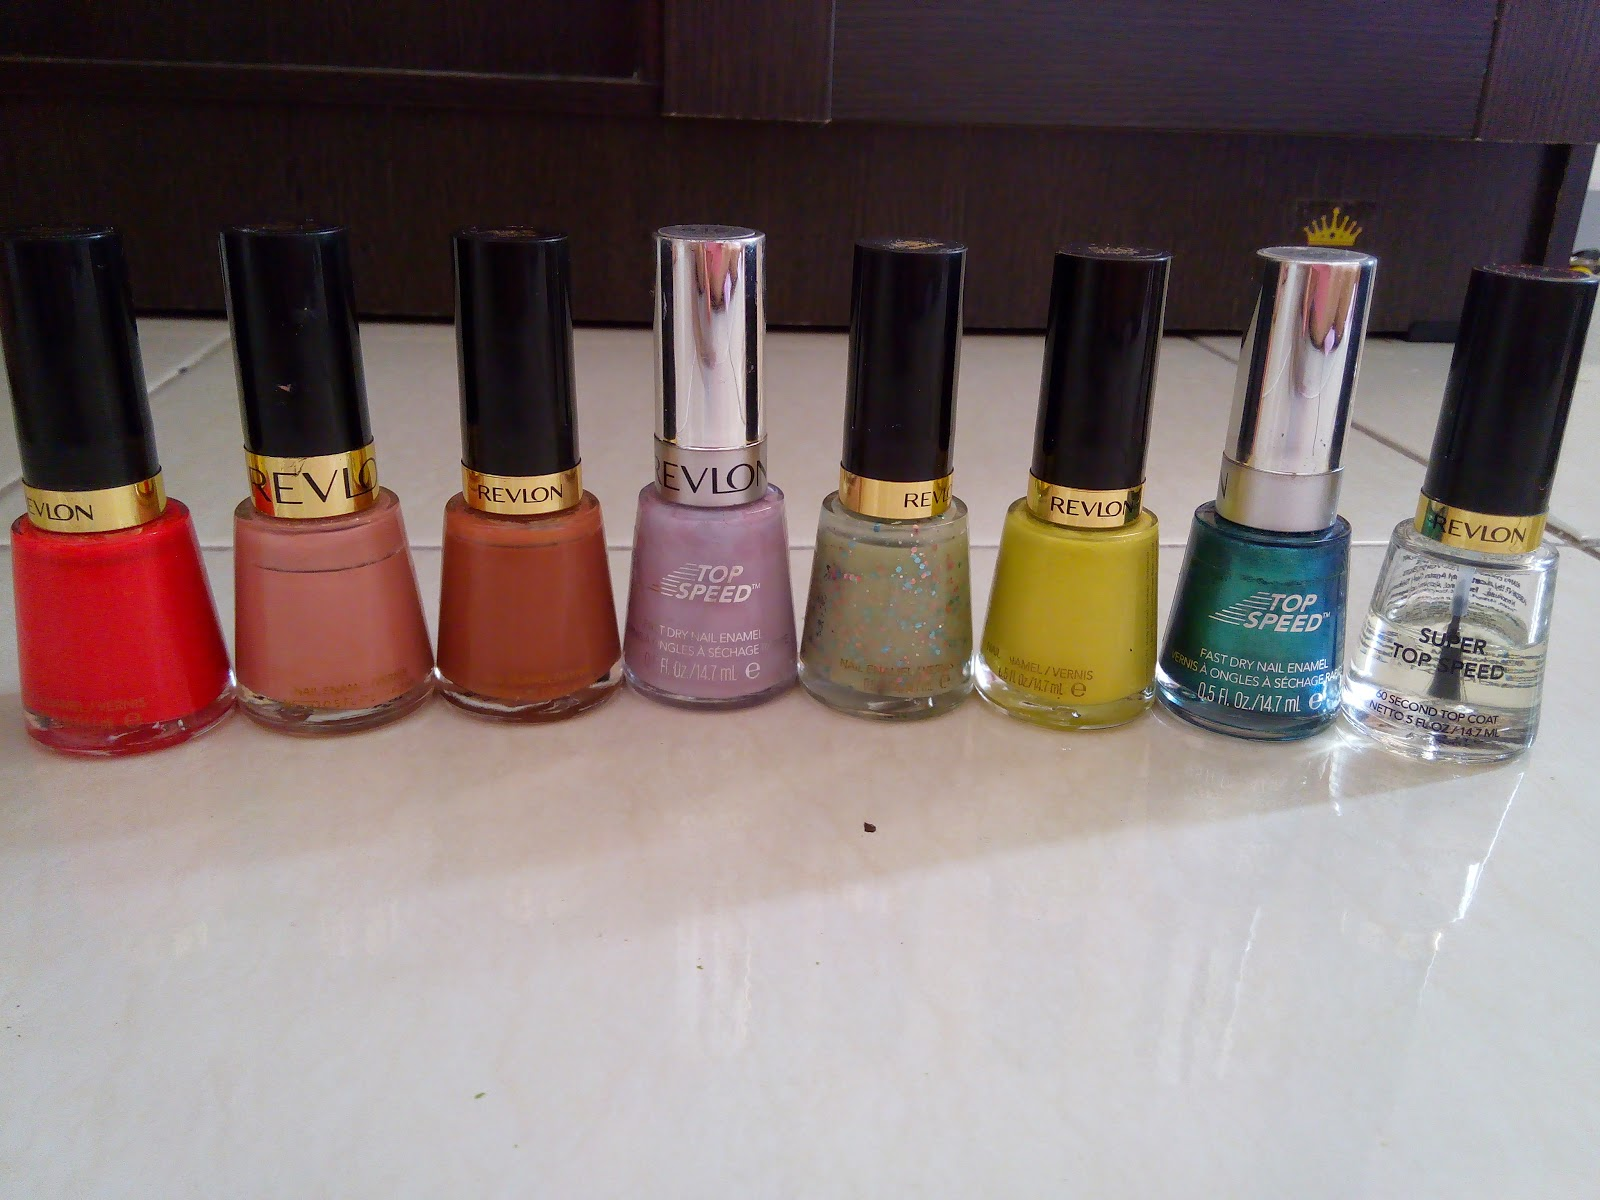 my simple little things: My lovely nail polish colection